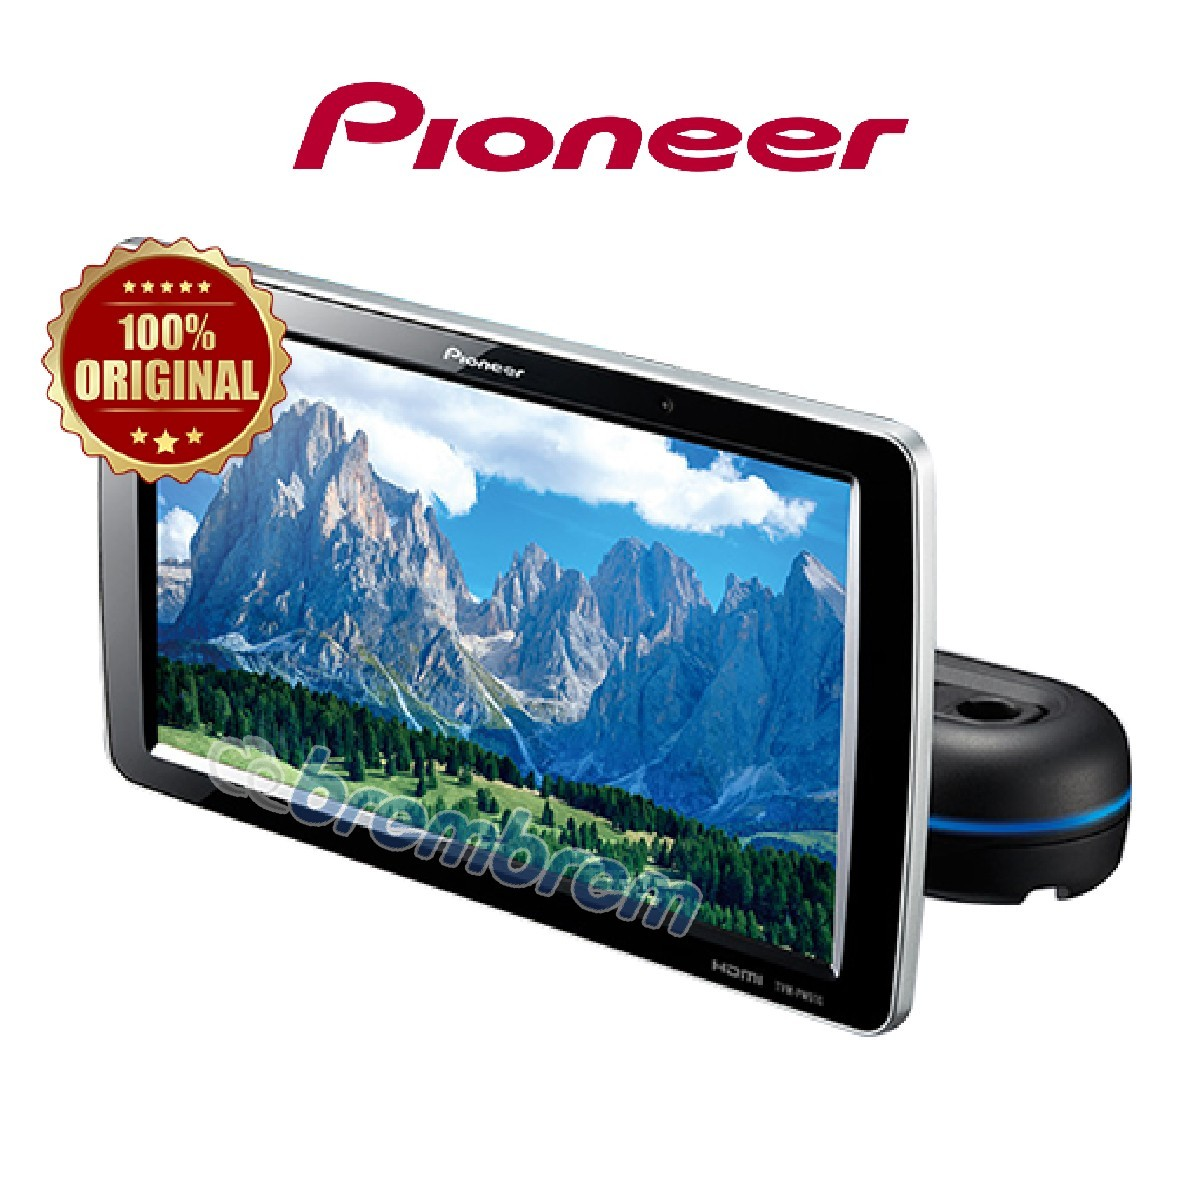 PIONEER TVM PW910T - HEADREST MONITOR